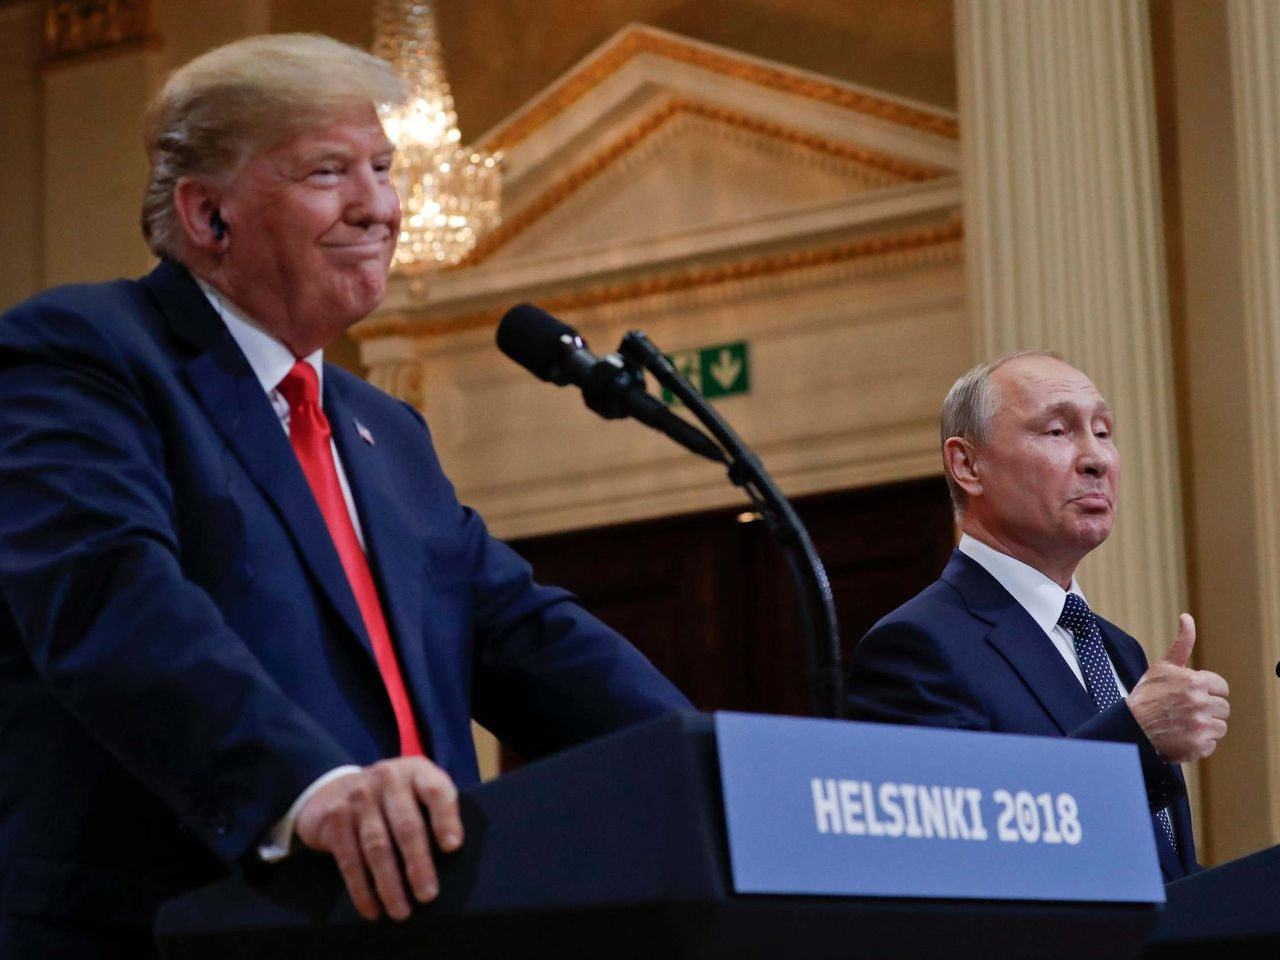 Trump speaks to Putin for first time since Russian 'bounty' revelations – but apparently fails to mention it